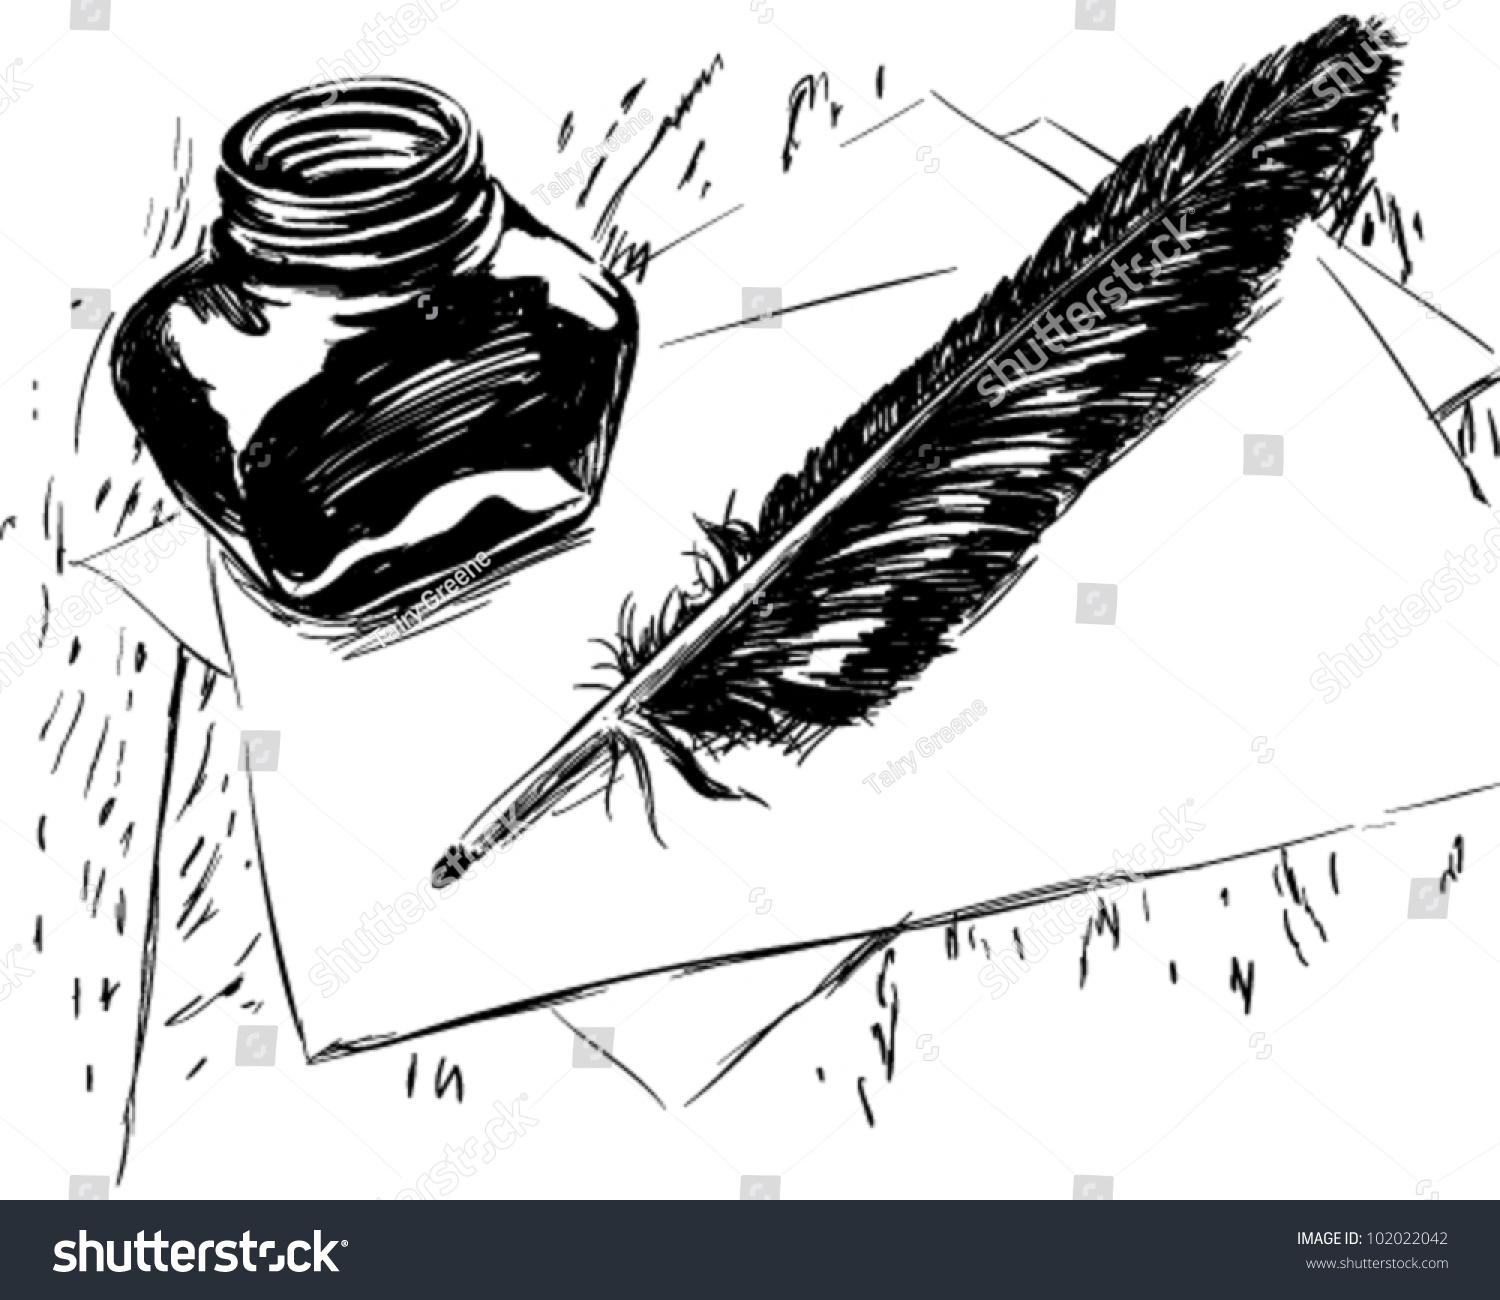 Line Drawing Of Quill : Hand drawn ink quill bottle illustration stock vector